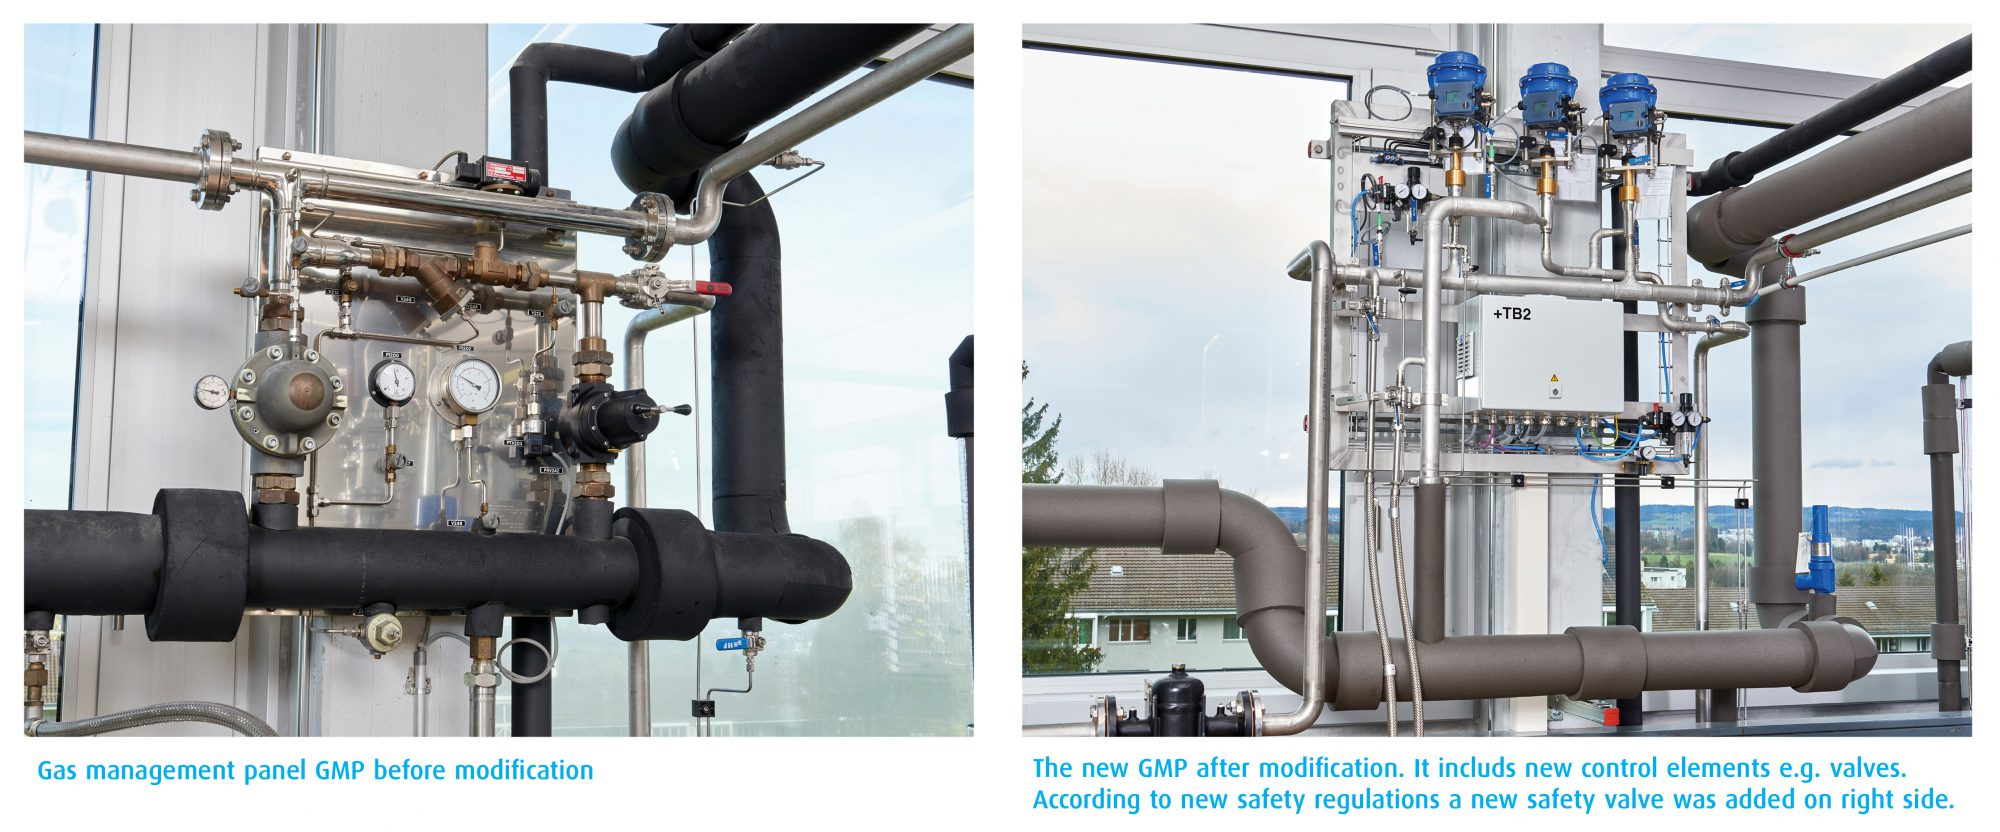 The gas management panel before and after modernization.